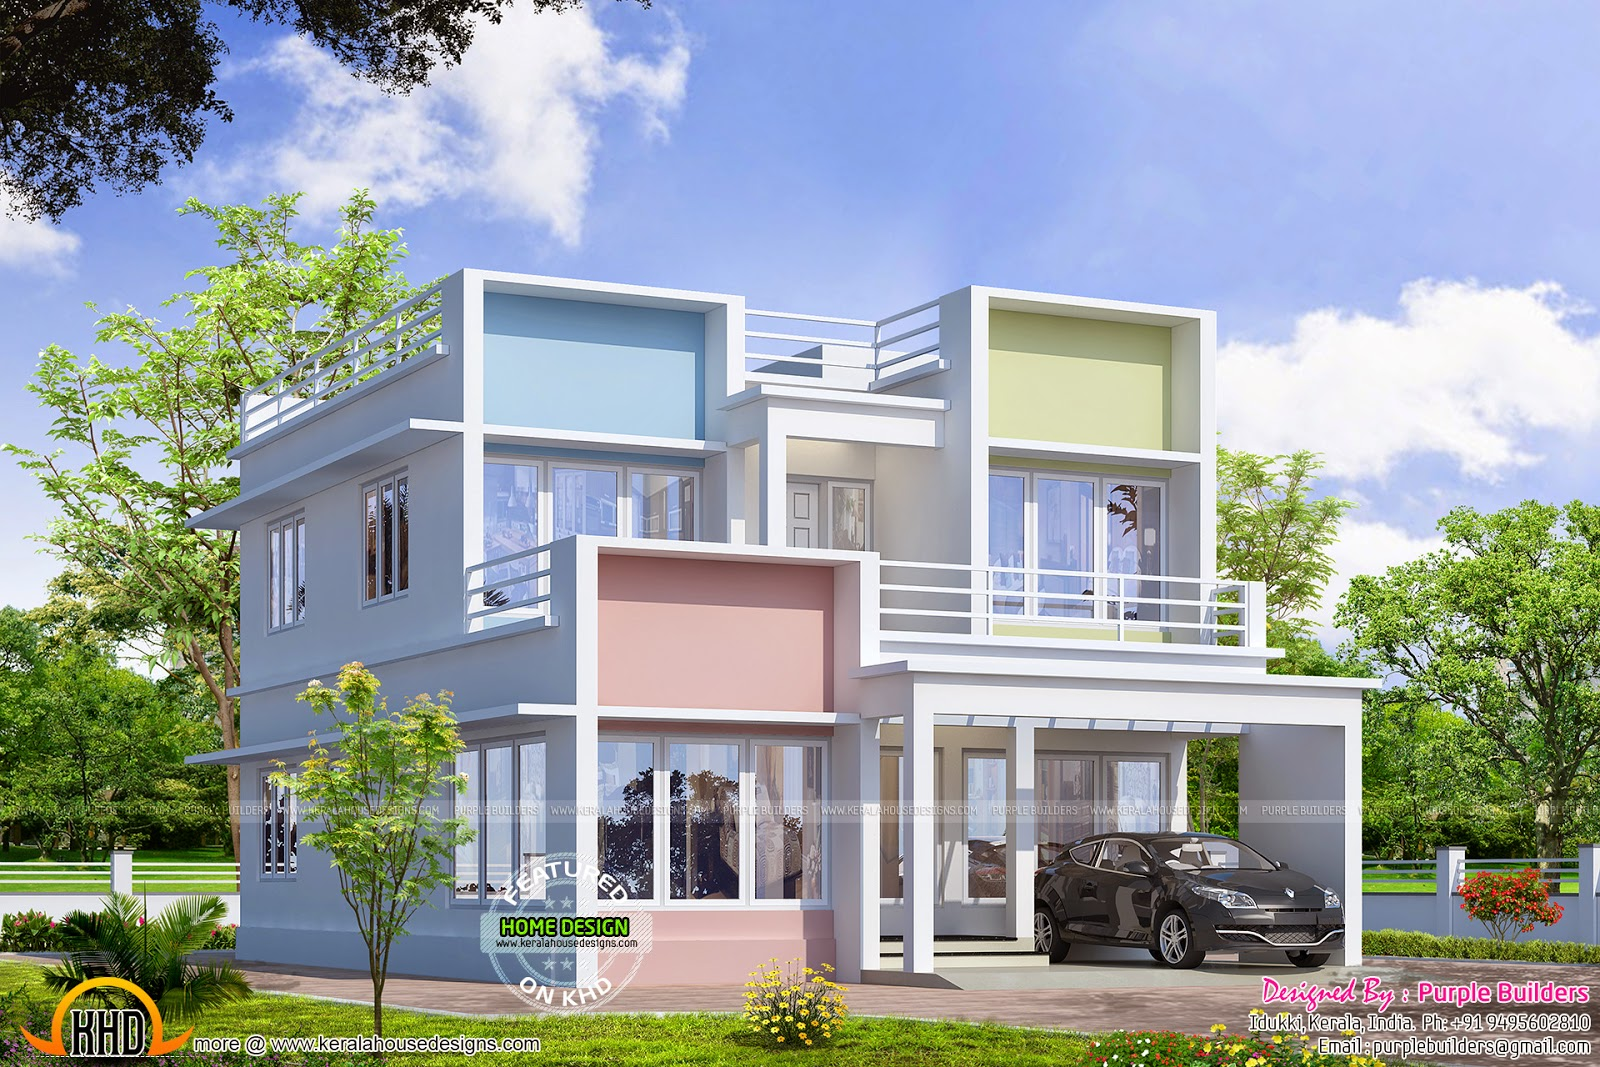 Modern colorful home design kerala home design and floor for Ground floor vs first floor